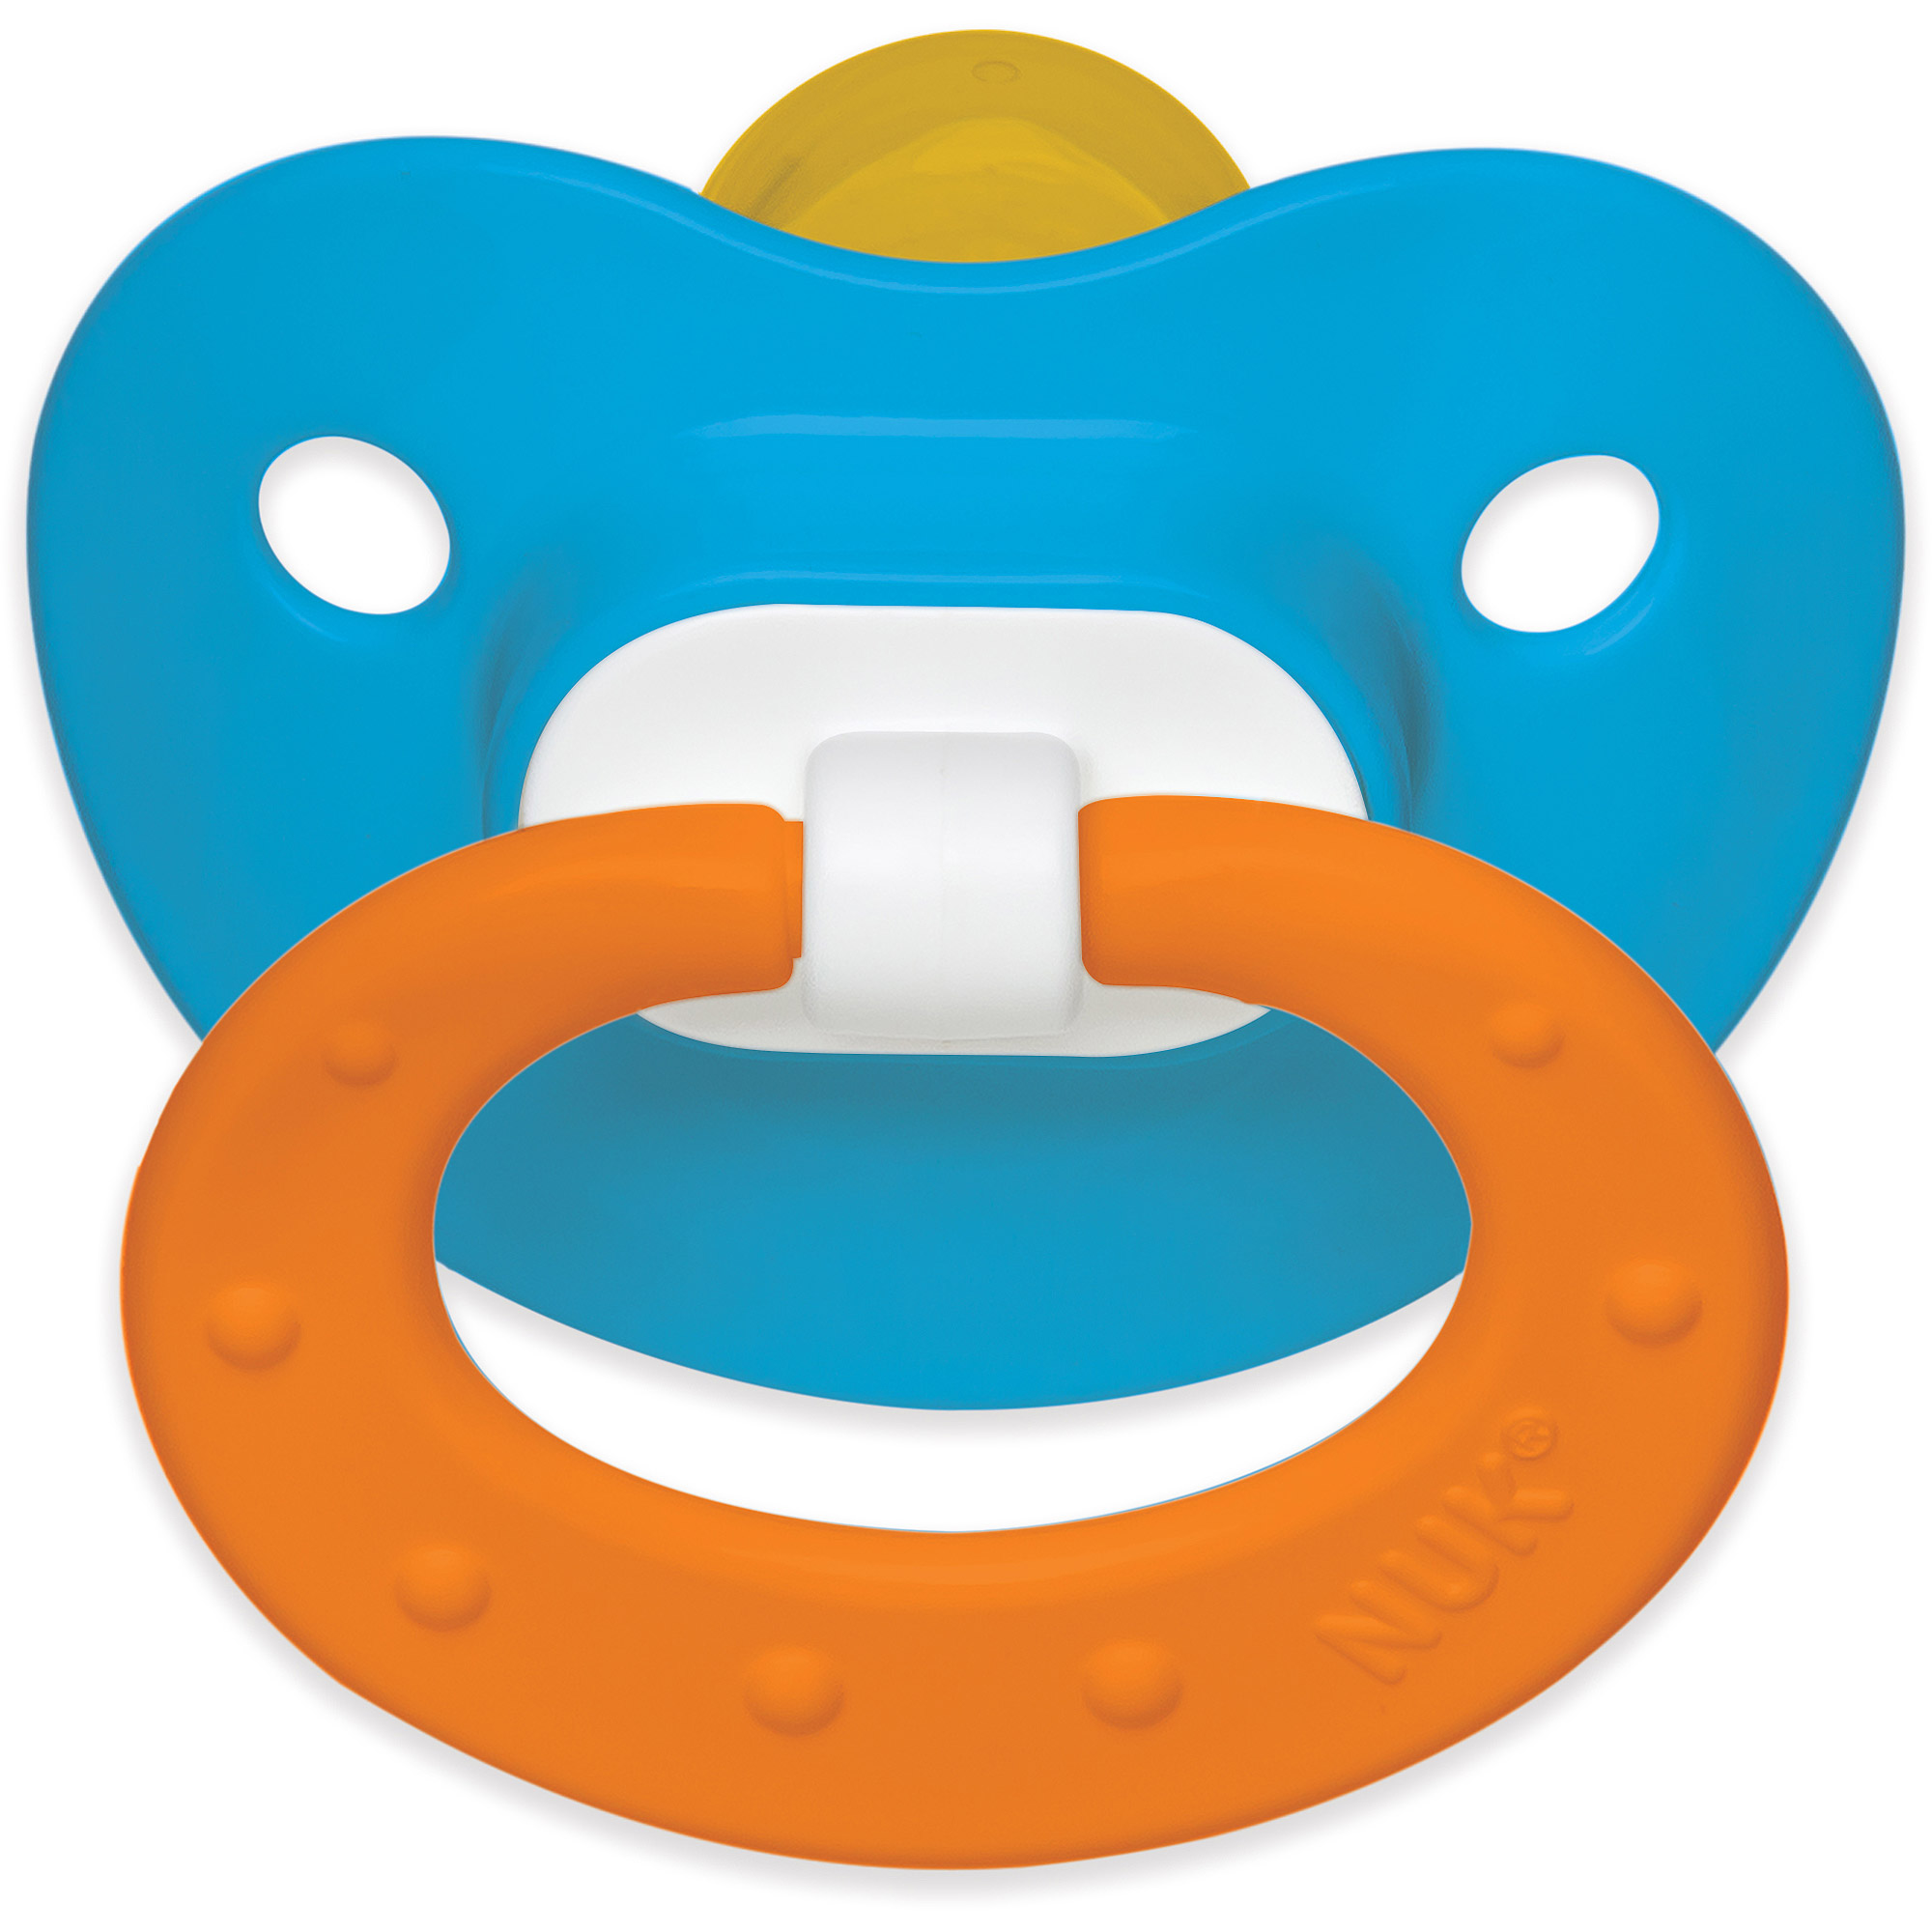 NUK Juicy Latex Orthodontic Pacifiers, 2ct, 18-36 months, BPA-Free (Colors May Vary)